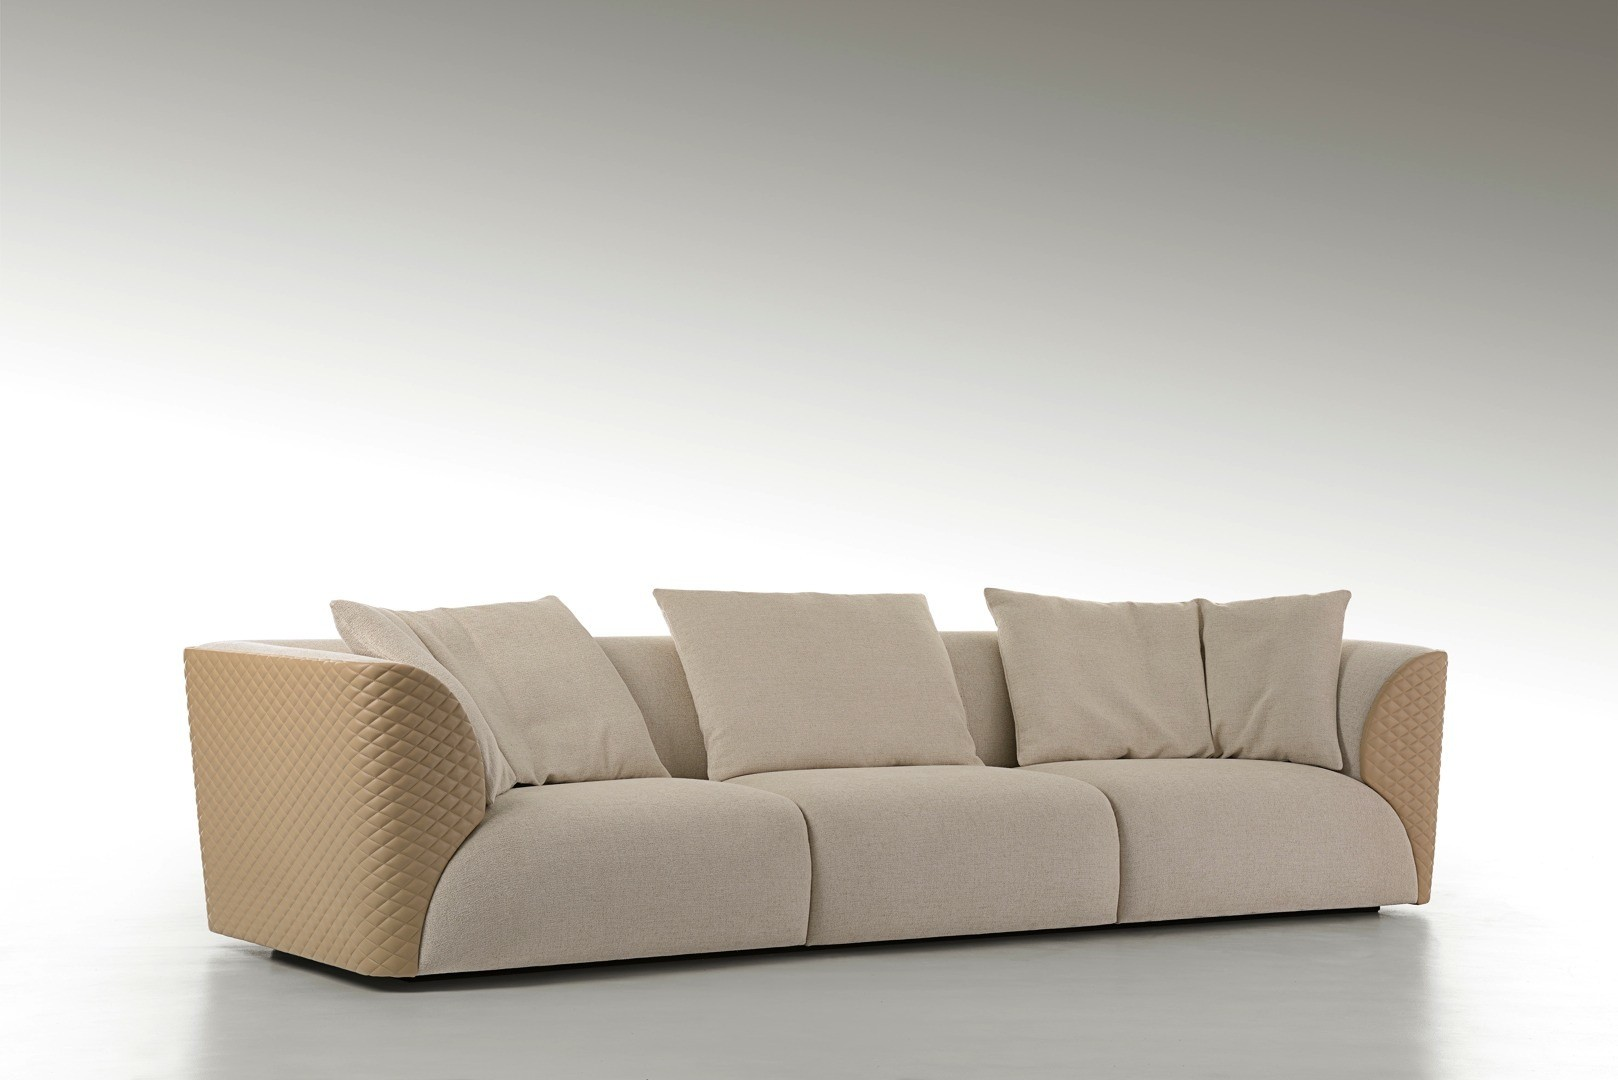 Bentley unveils new furniture and accessories collection for Furniture collection